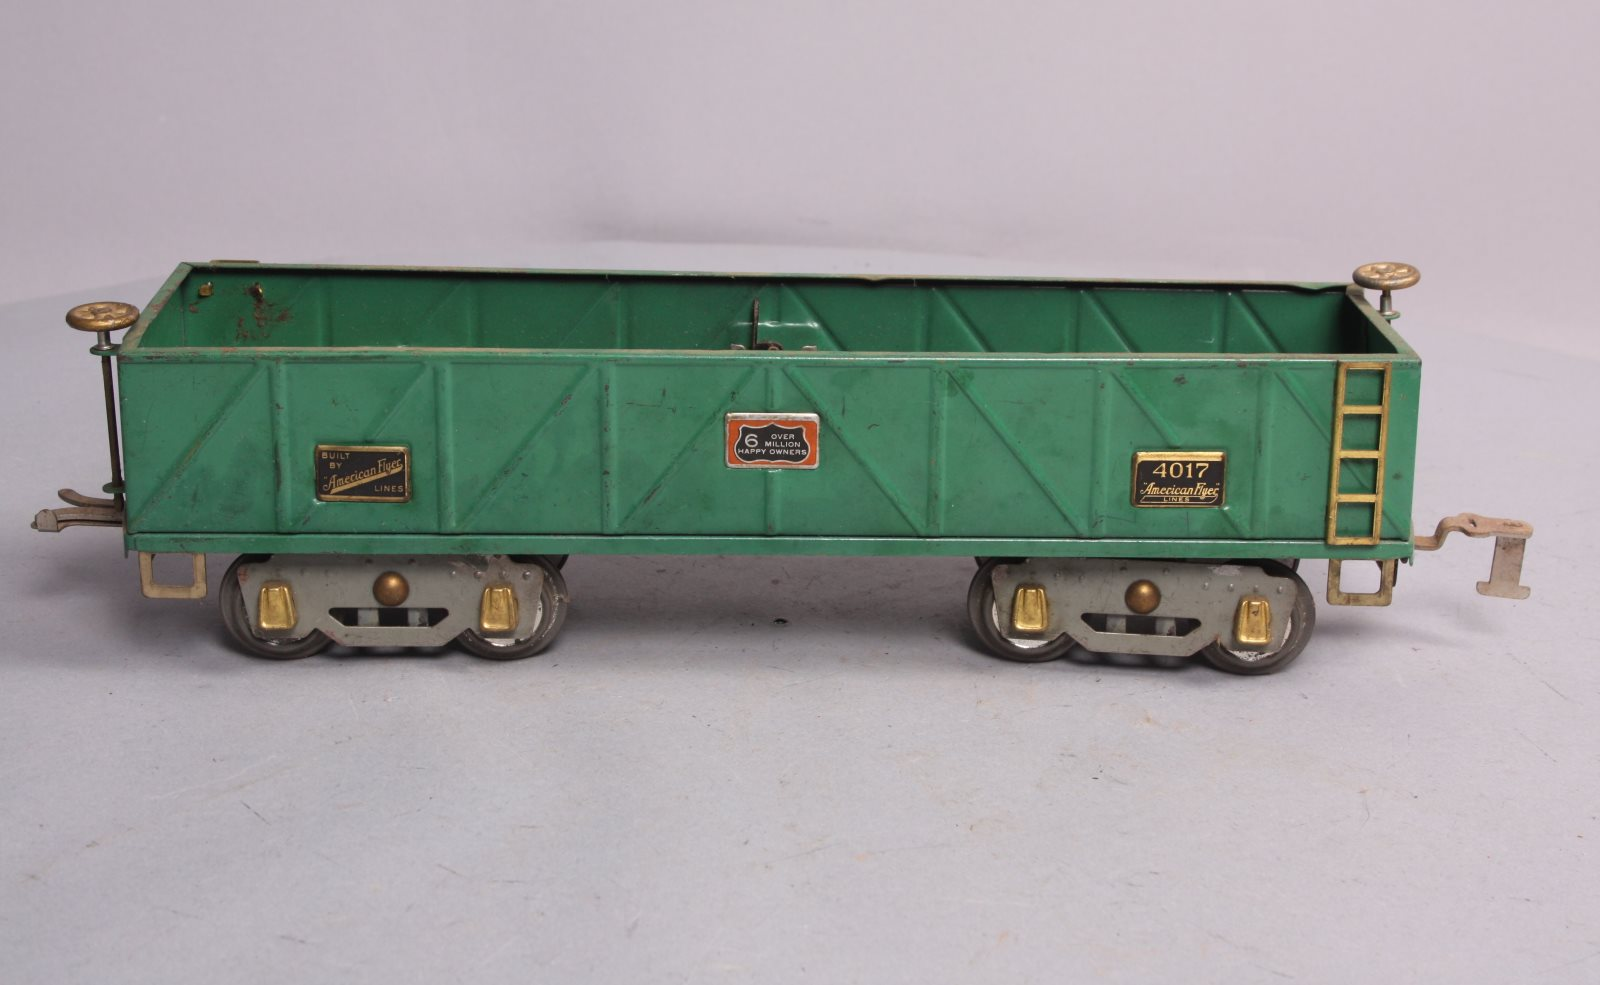 Buy American Flyer 4017 Standard Gauge Green Gondola